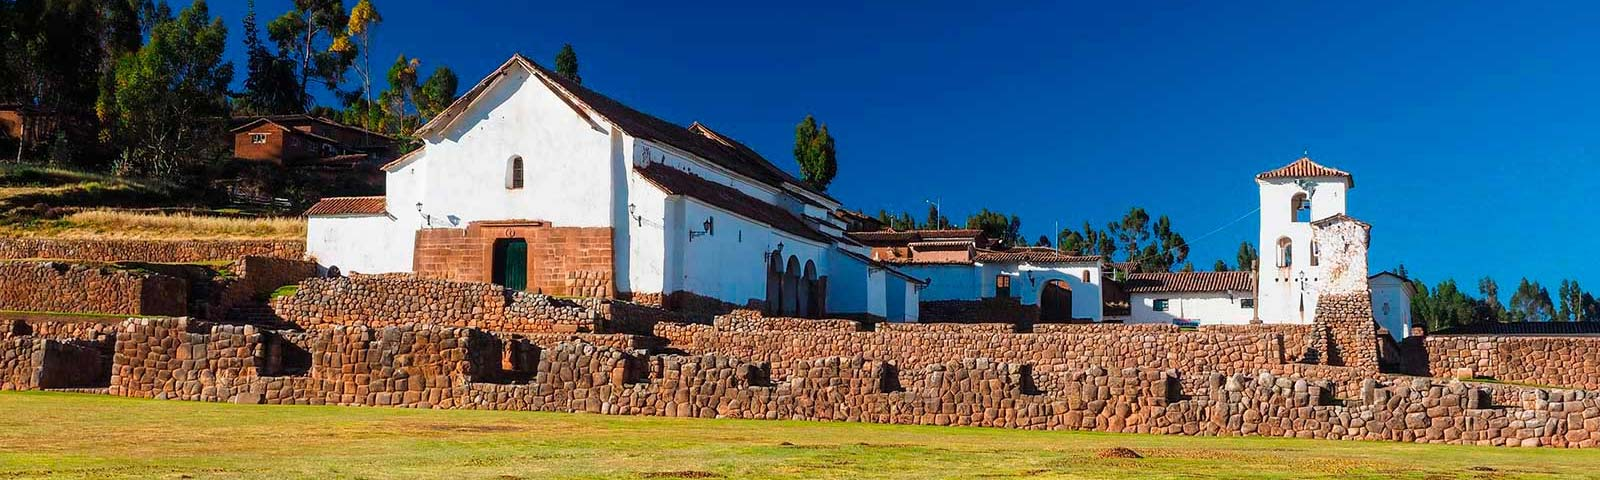 Information about CHINCHERO